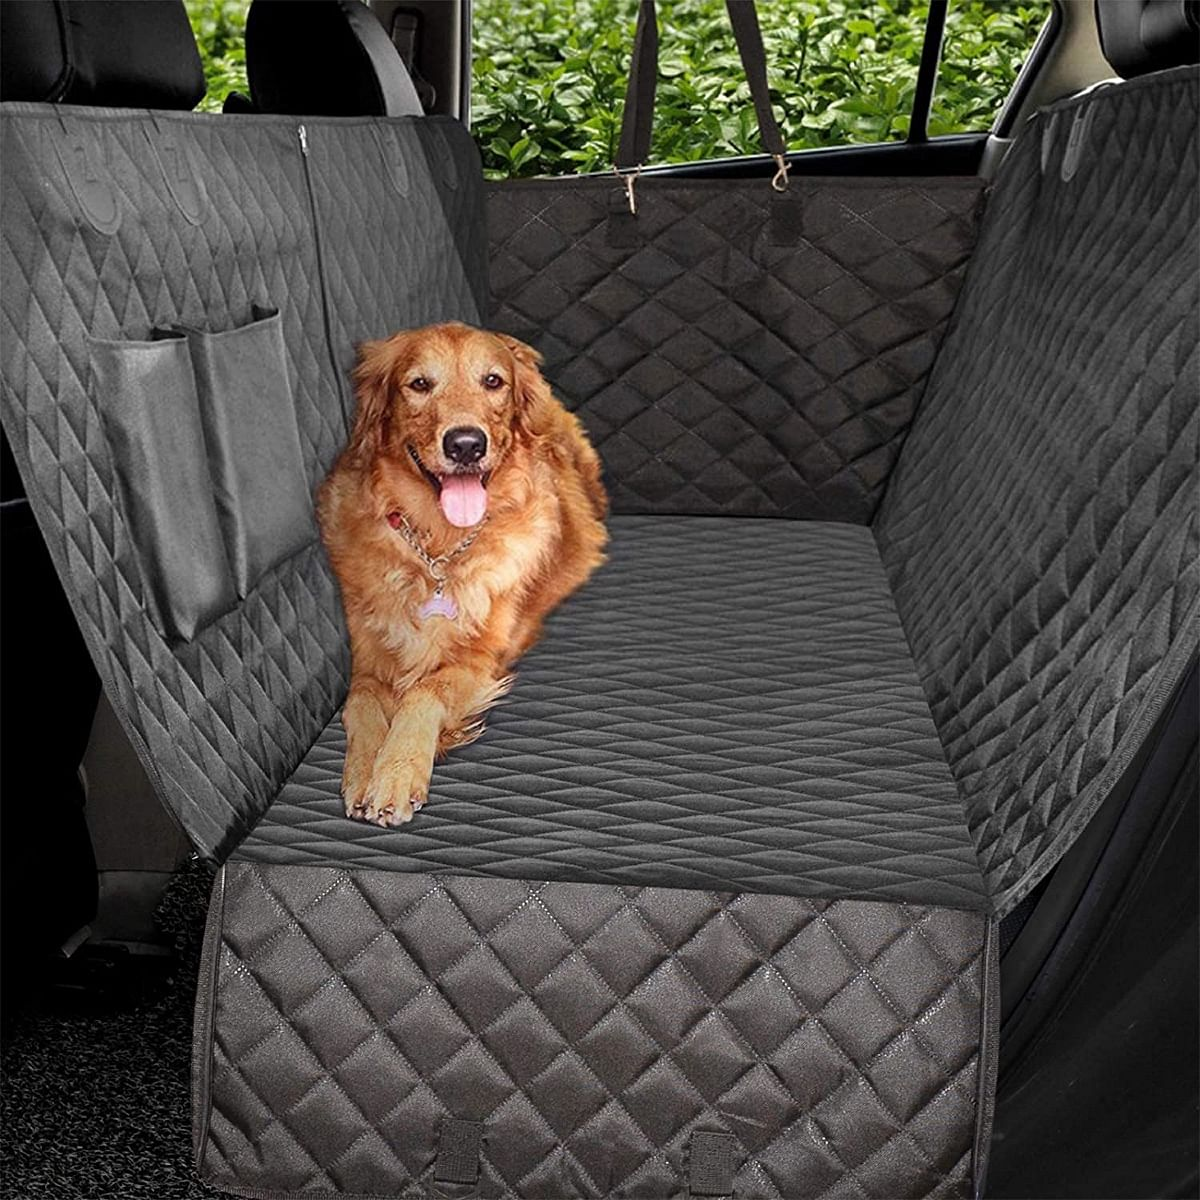 A seat cover also keeps your dogs happier!